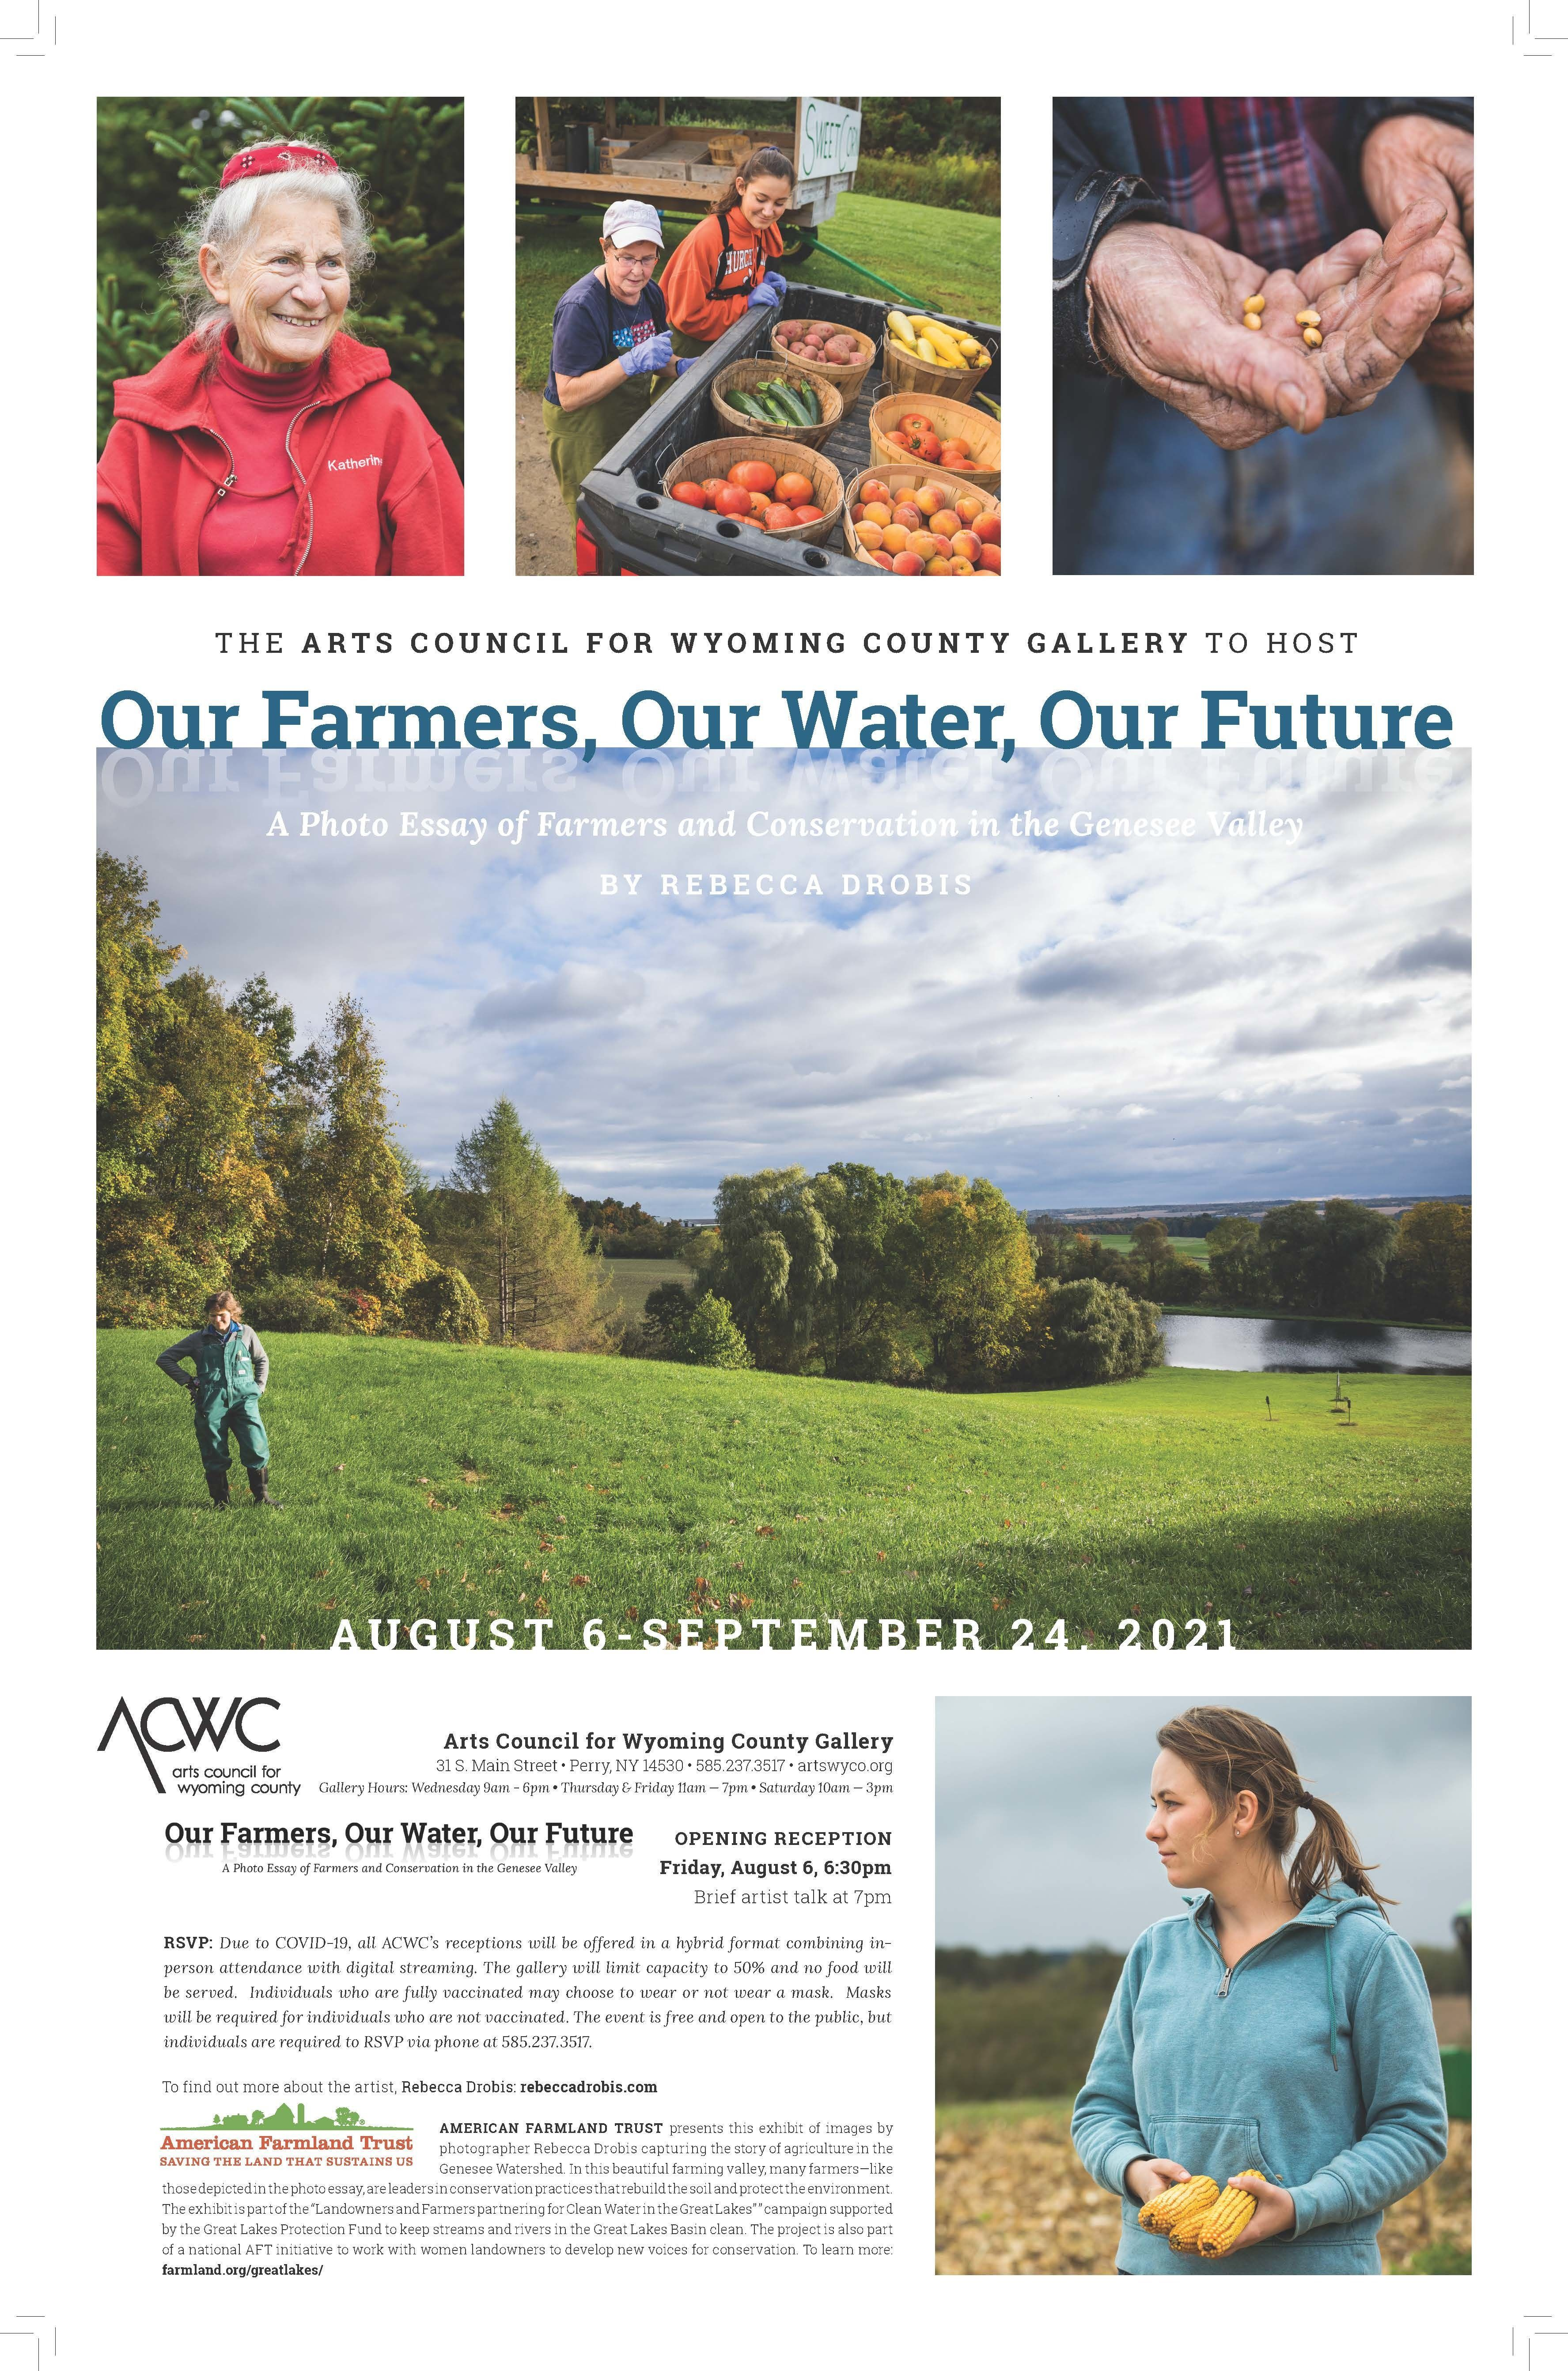 Our Farmers, Our Water, Our Future Exhibition August 6 - September 24, 2021